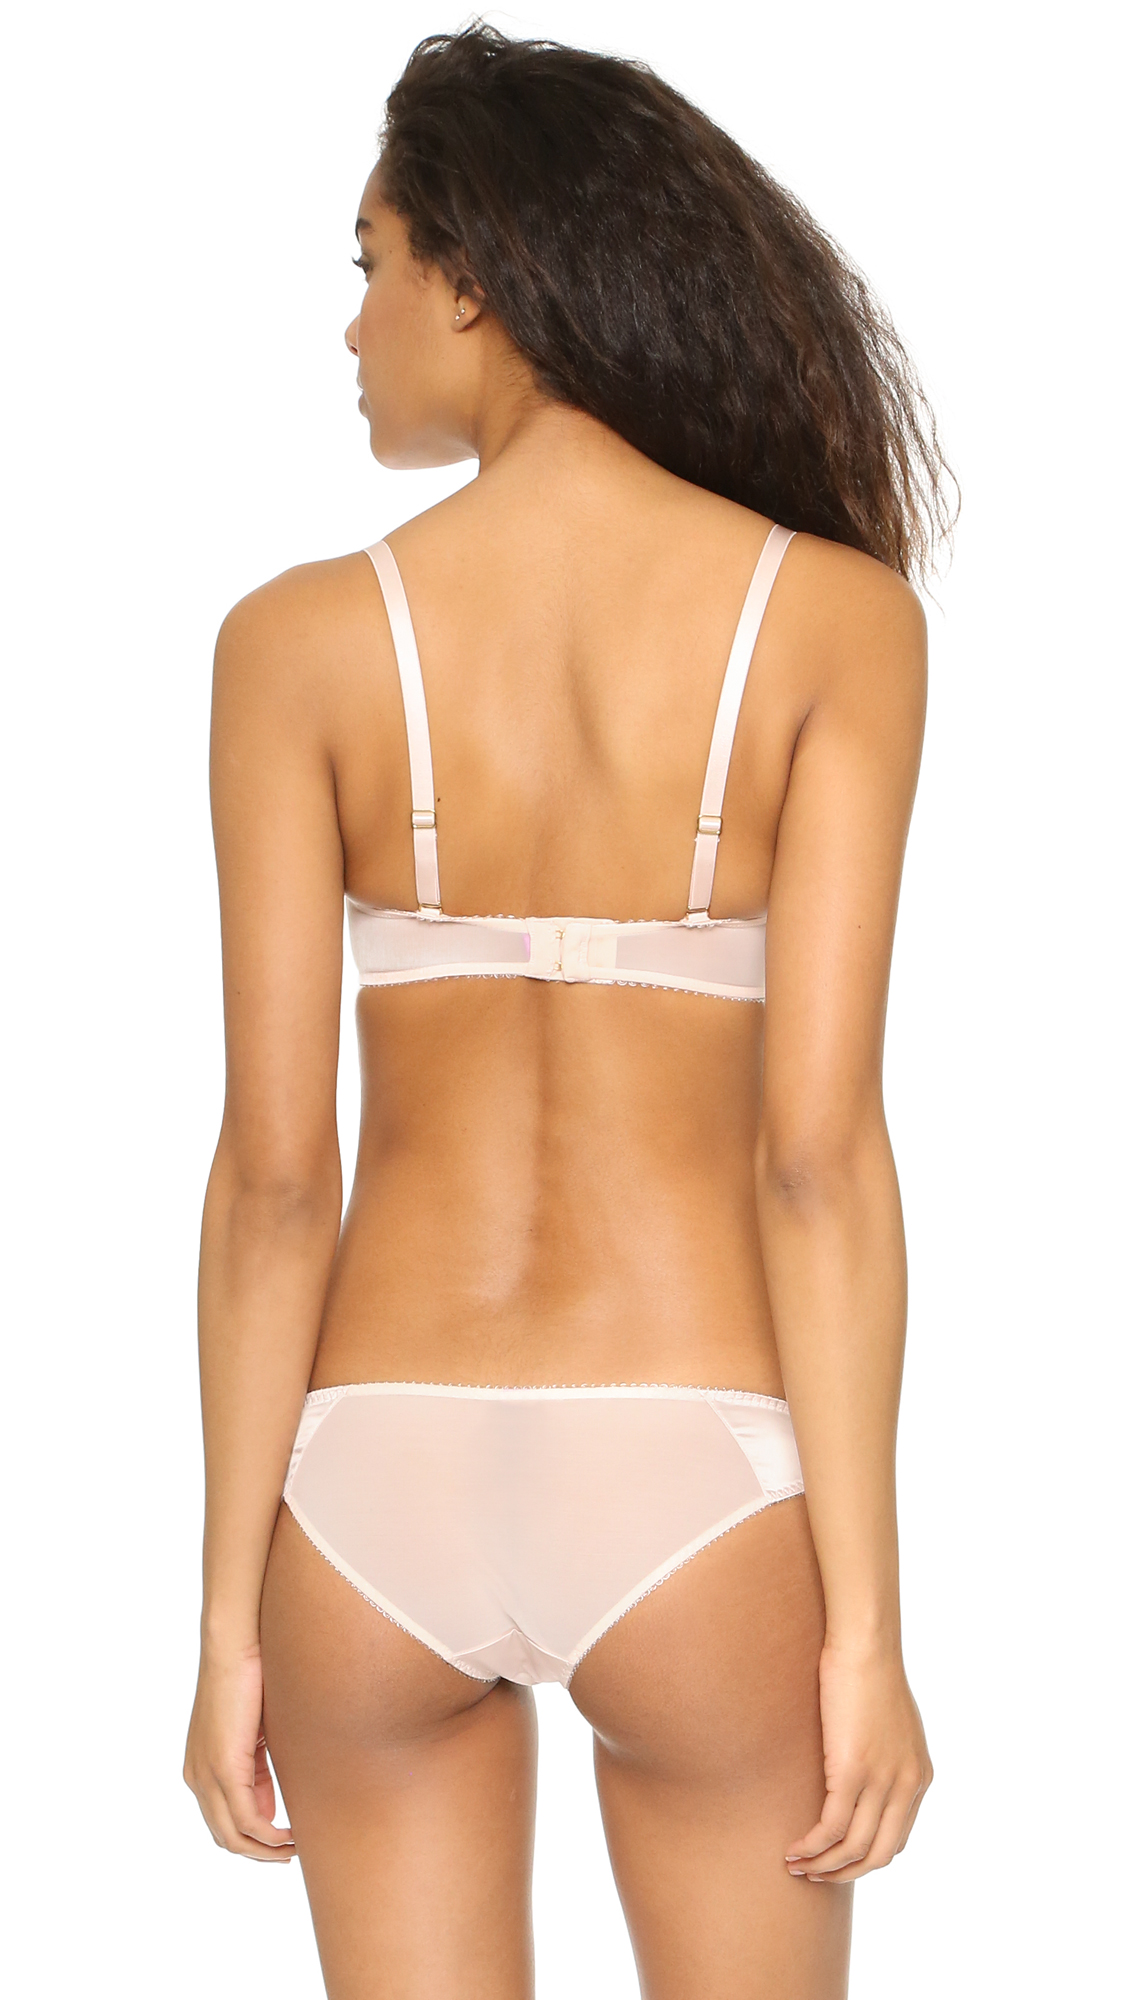 L Agent by Agent Provocateur Penelope Padded Strapless Bra  8542b6b96